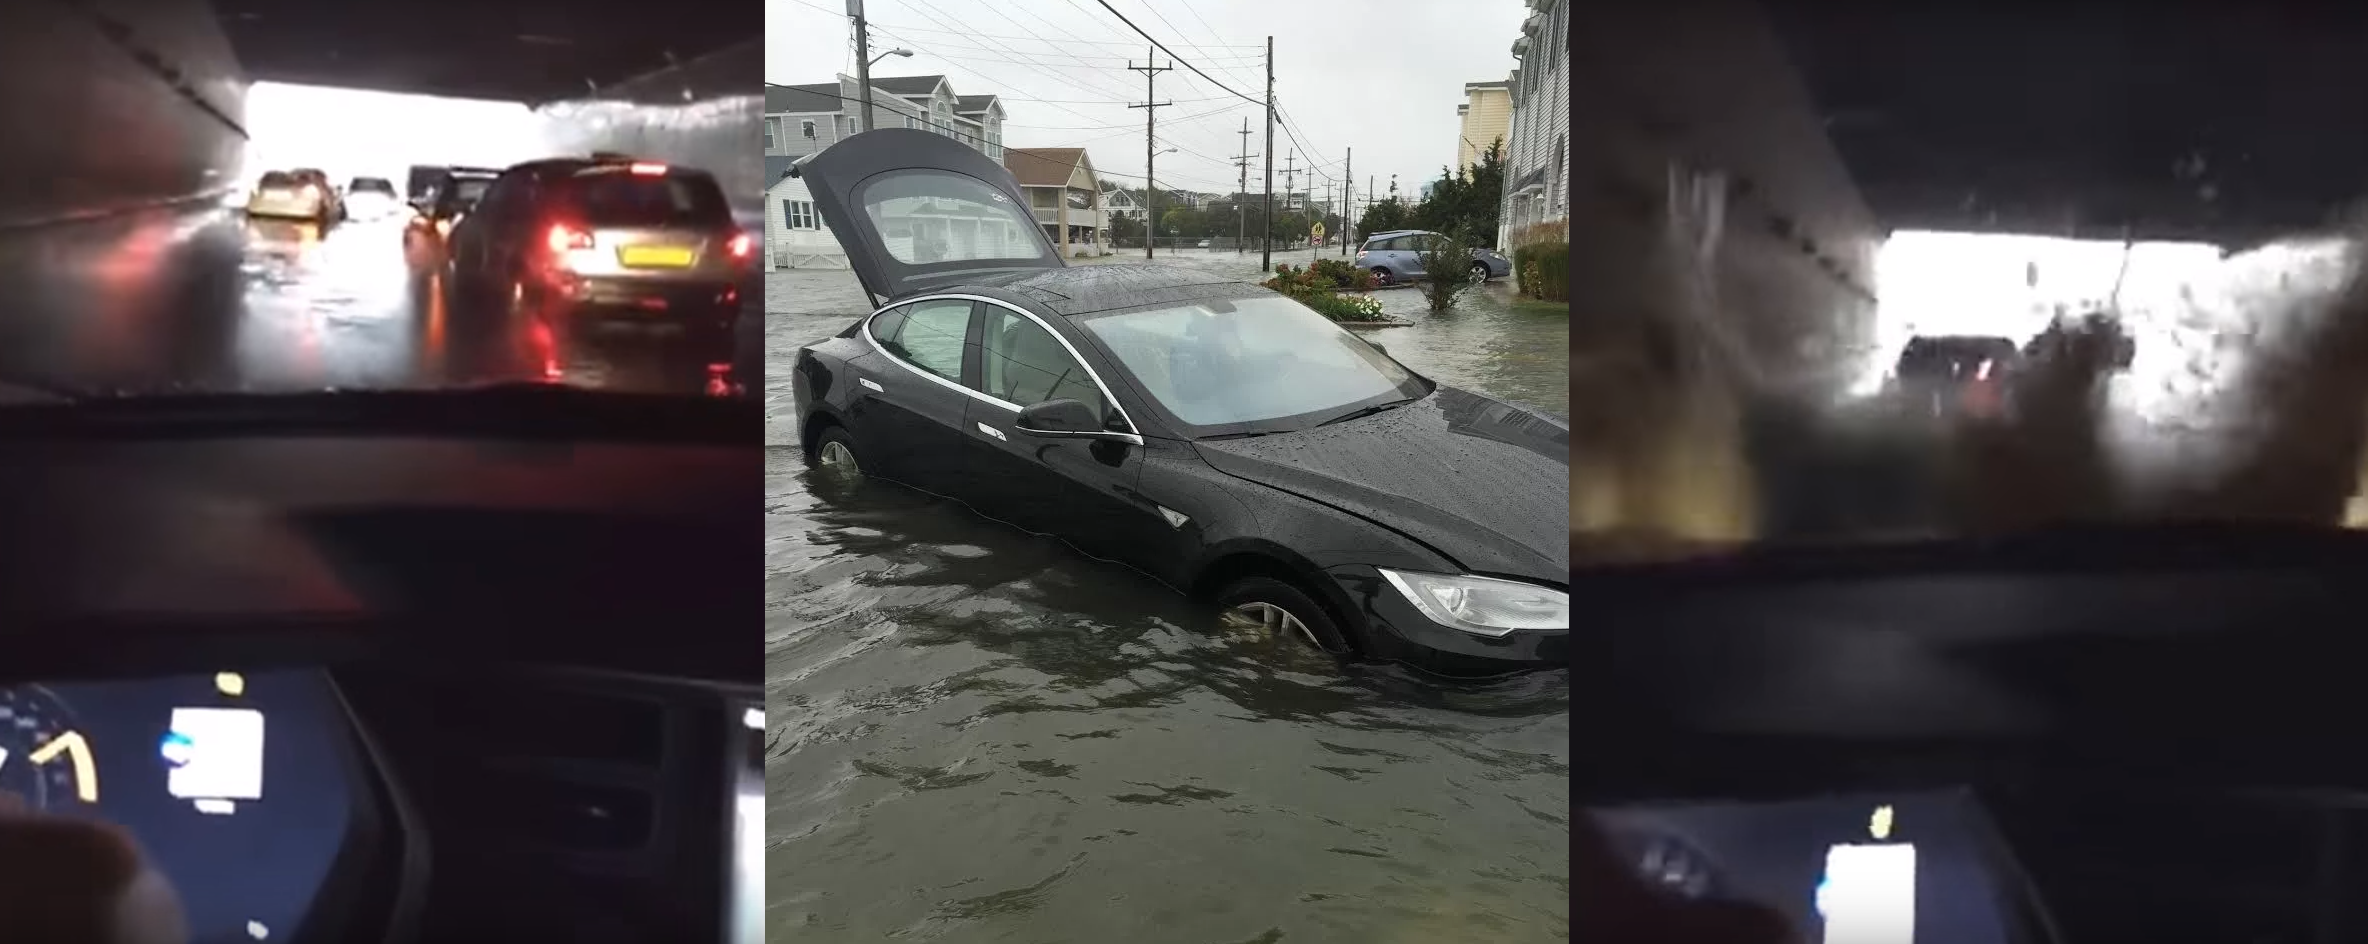 flooded tesla Model S